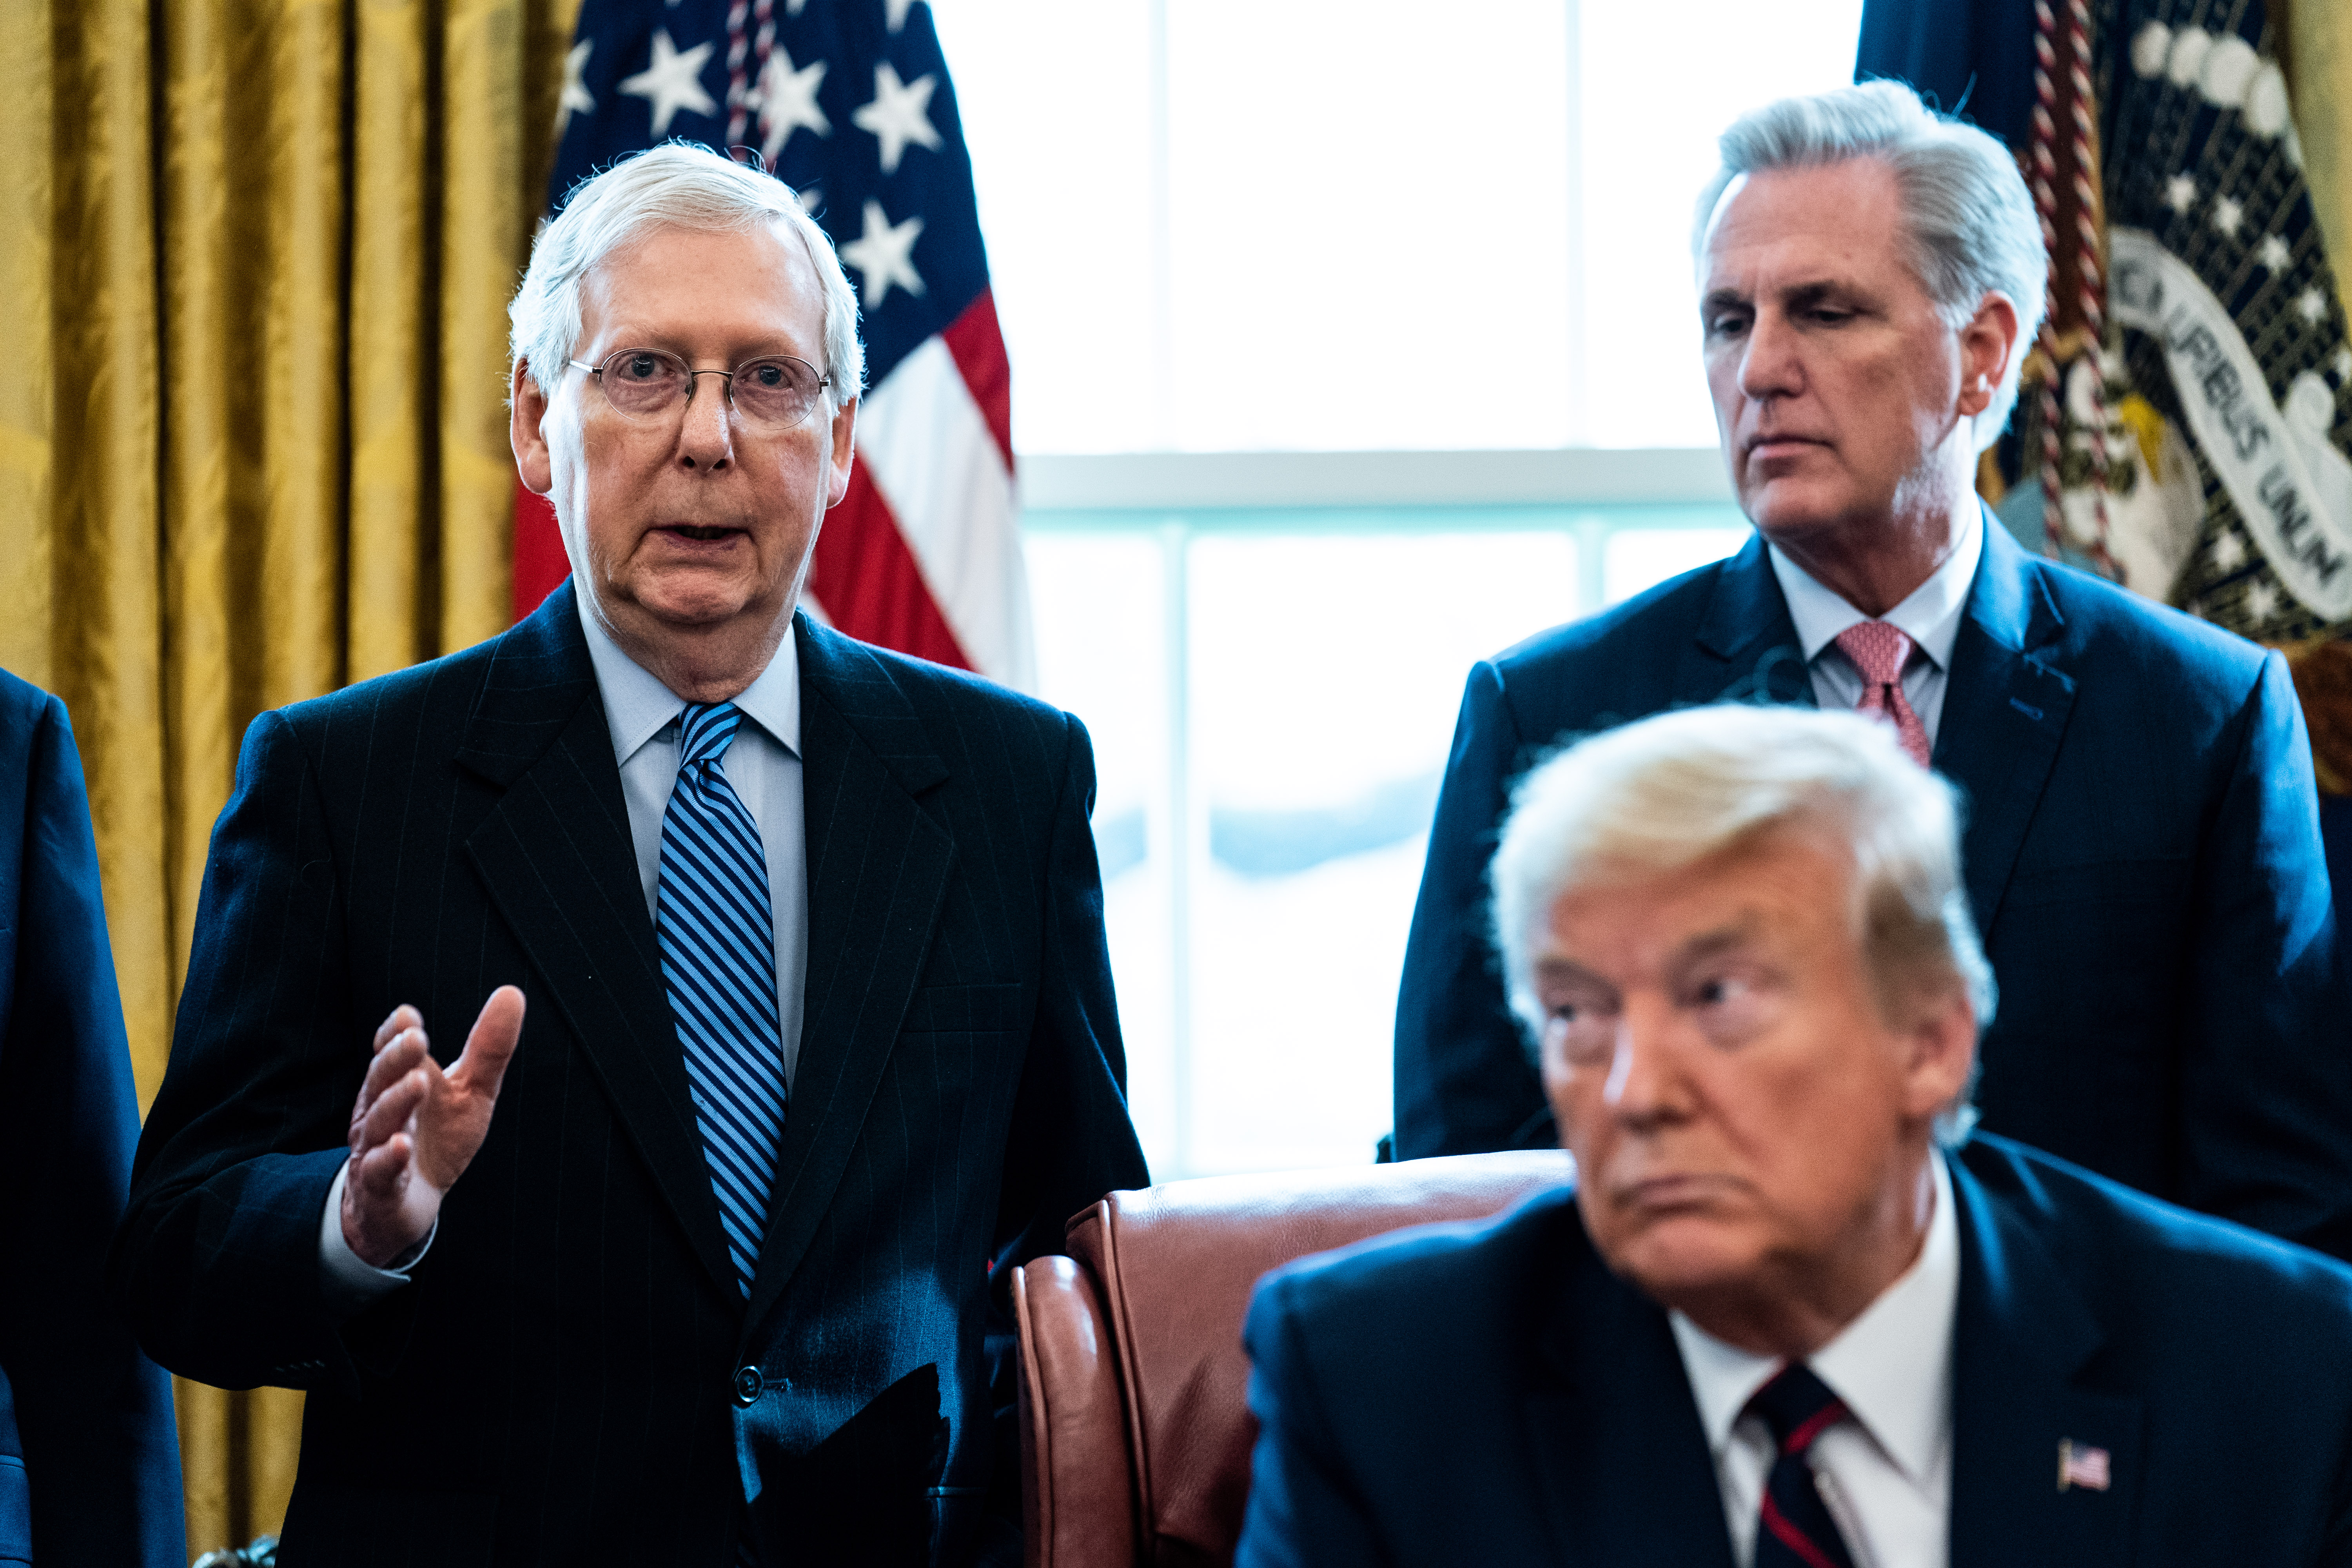 WASHINGTON, DC - MARCH 27: (L-R) Senate Majority Leader Mitch McConnell (R-KY) speaks as House Minority Leader Kevin McCarthy (R-CA) U.S. President Donald Trump listen during a signing ceremony for H.R. 748, the CARES Act in the Oval Office of the White House on March 27, 2020 in Washington, DC. Earlier on Friday, the U.S. House of Representatives approved the $2 trillion stimulus bill that lawmakers hope will battle the the economic effects of the COVID-19 pandemic. (Photo by Erin Schaff-Pool/Getty Images)